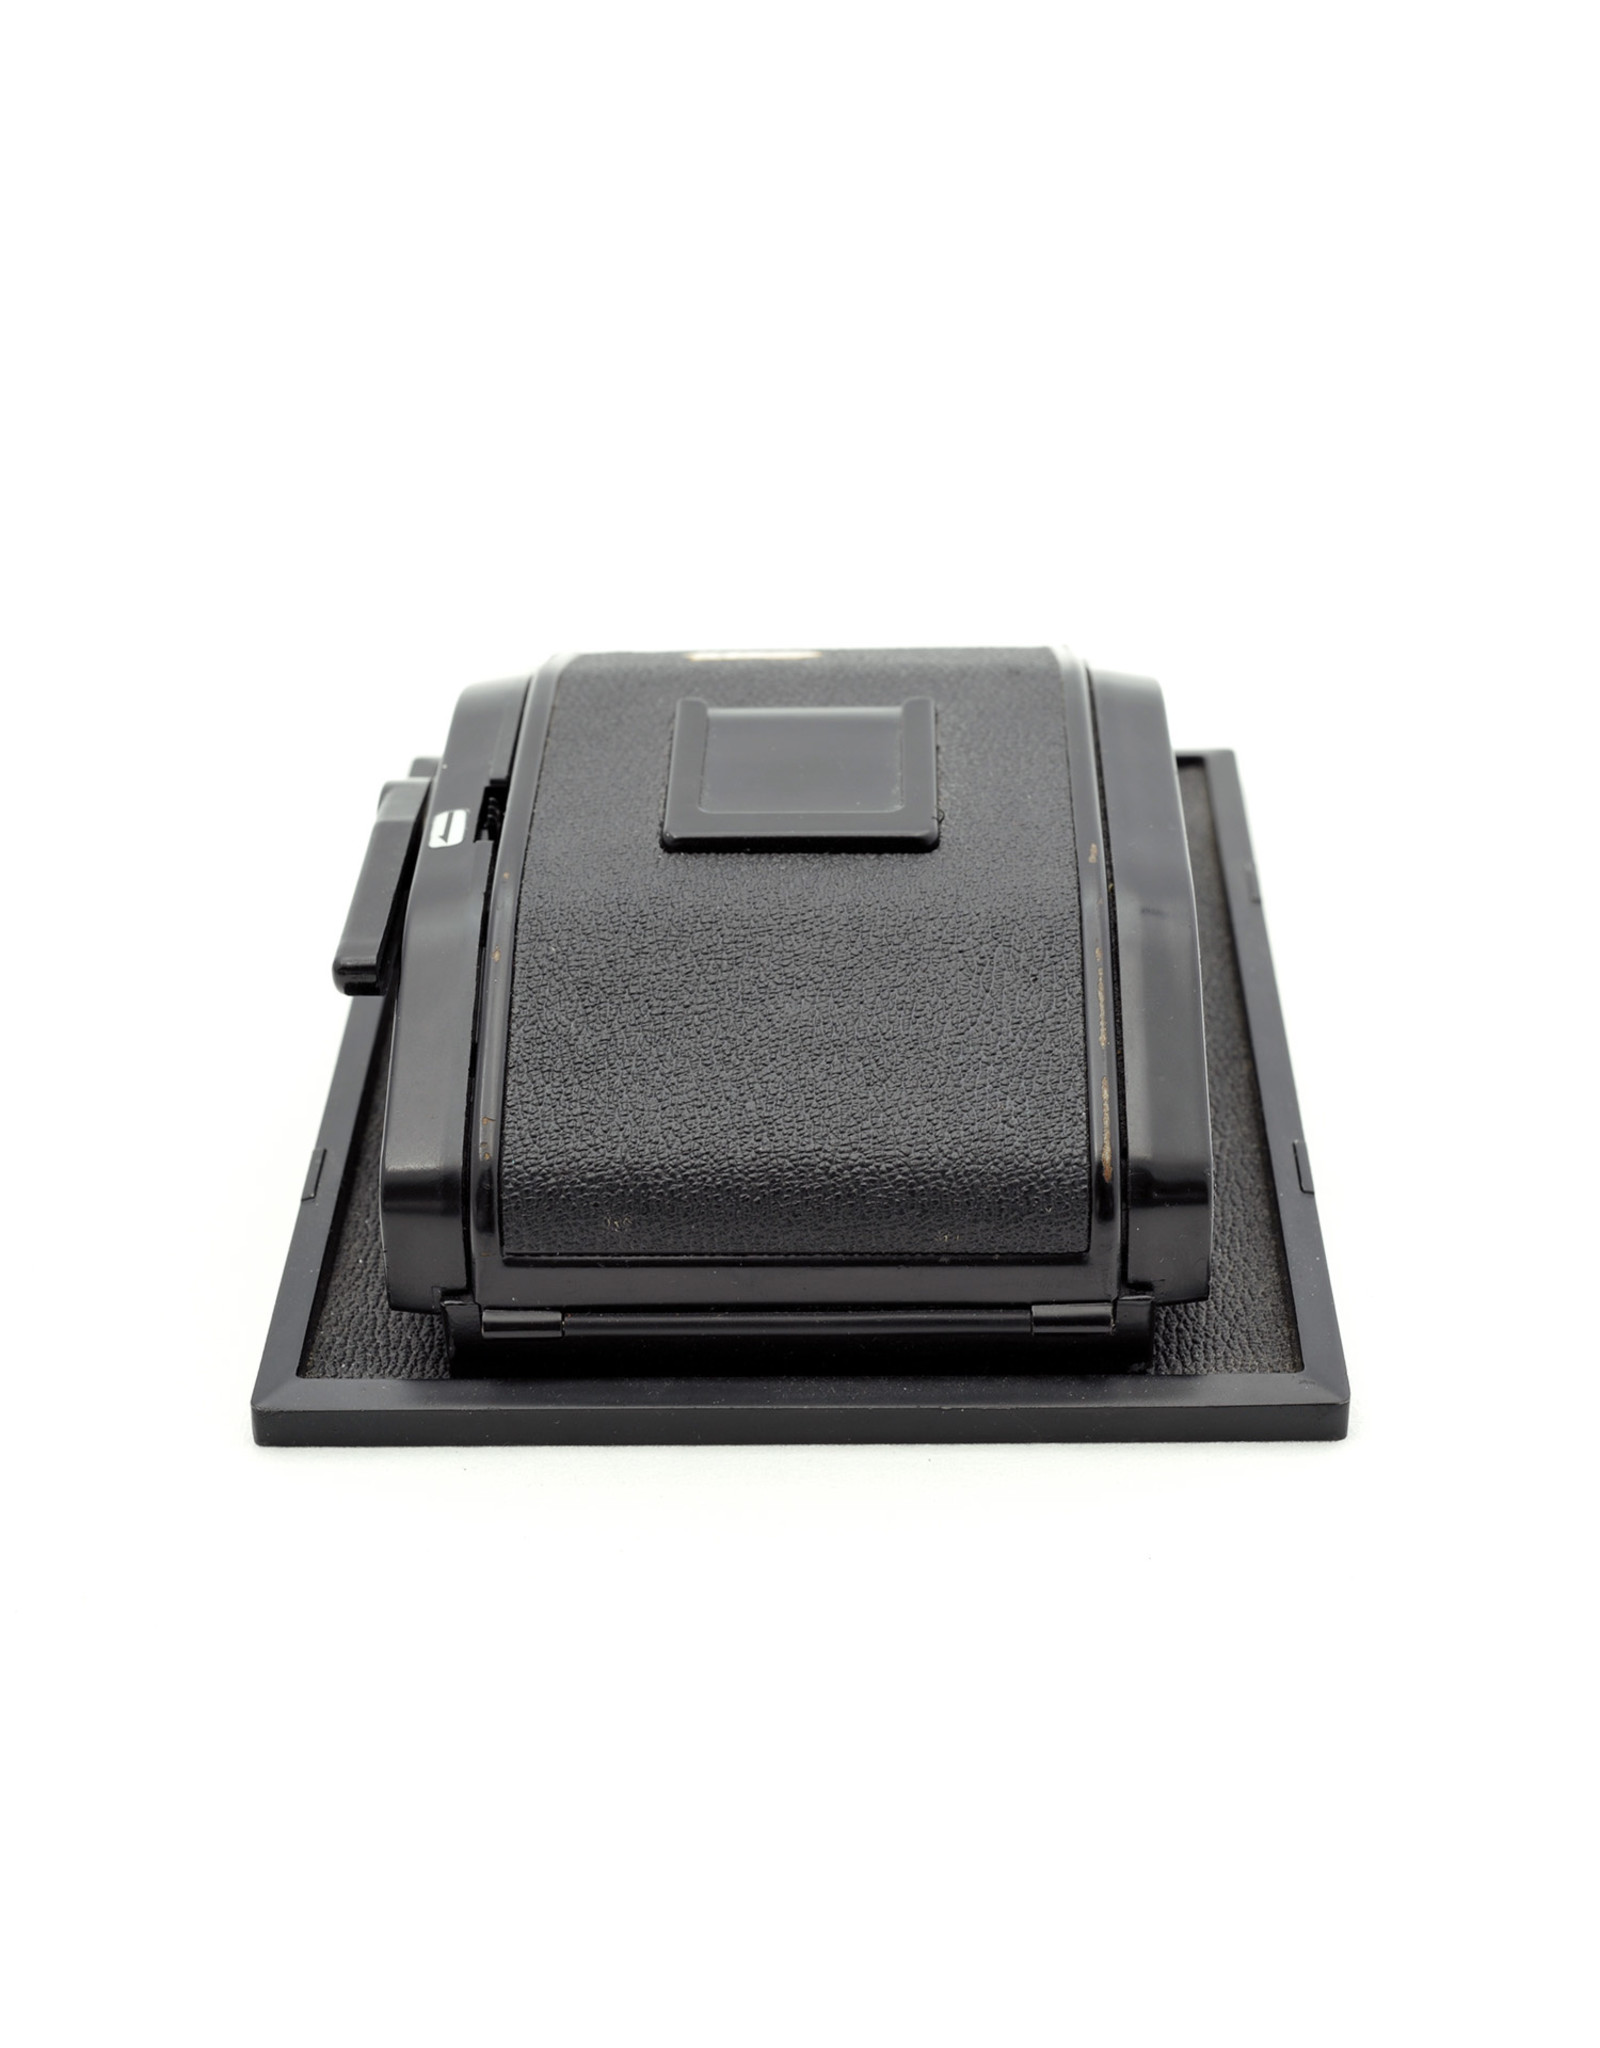 Wista Wista 6x9 Roll Film Holder for 5x4    AP2121905